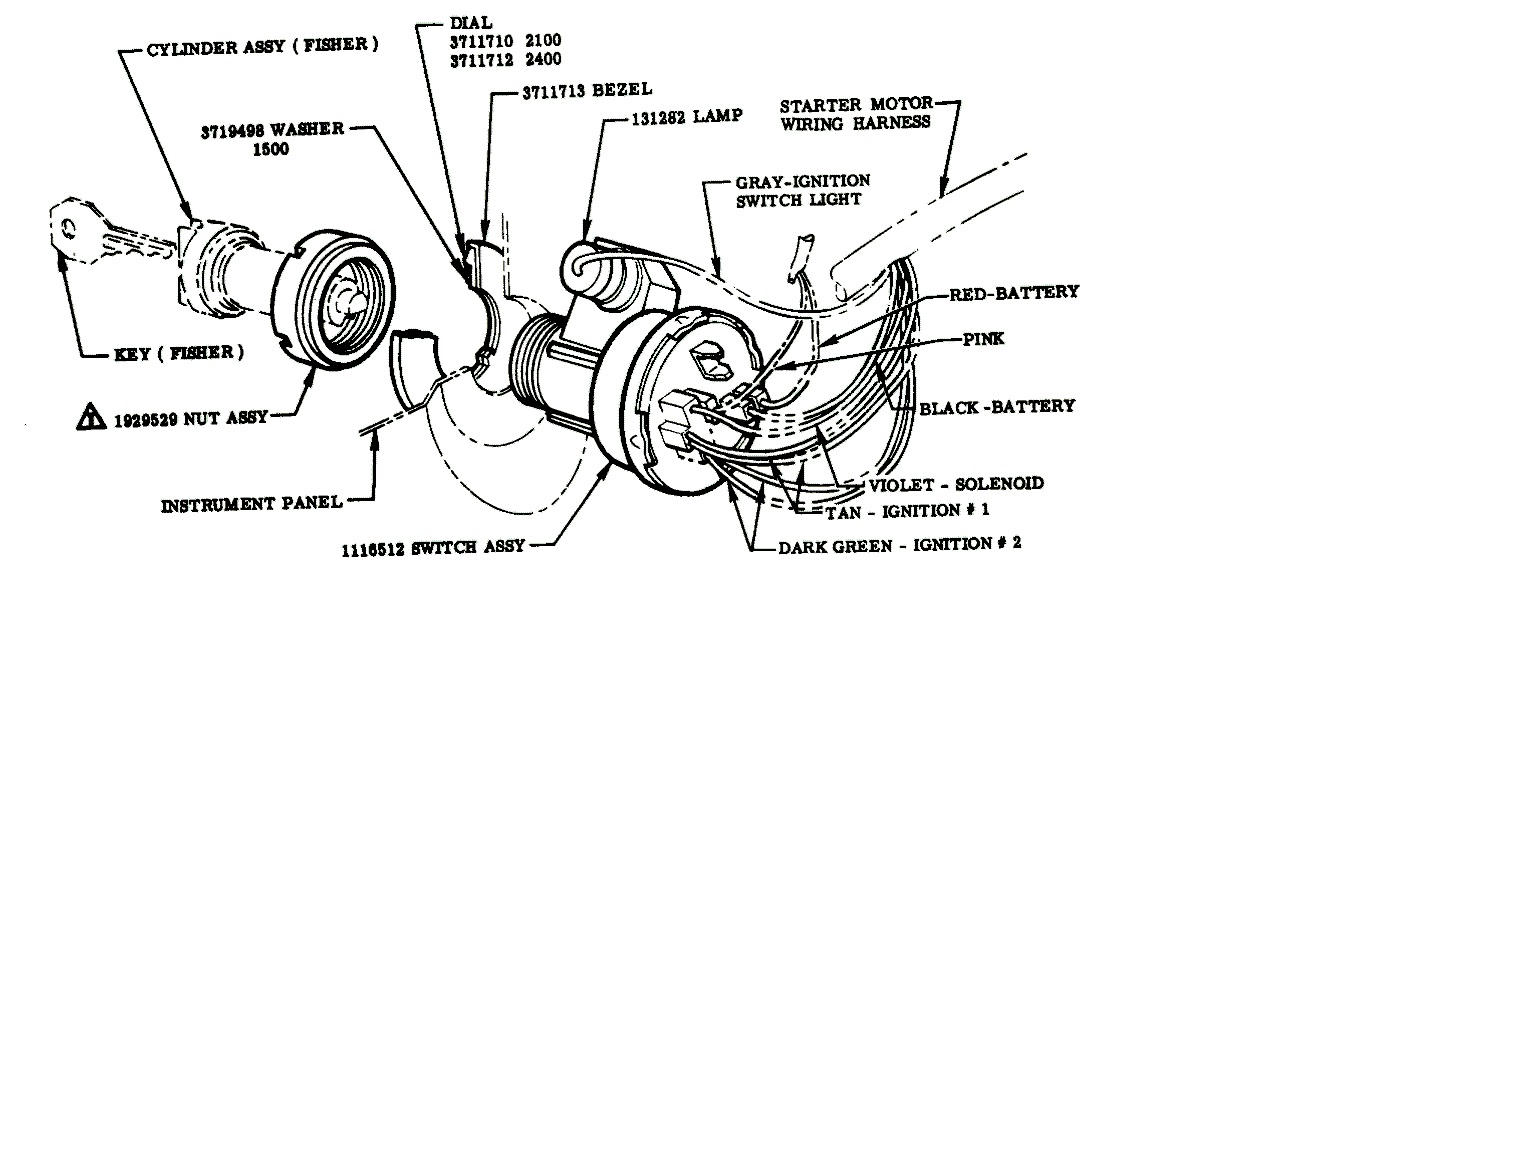 [QNCB_7524]  B40BE Ford Ignition Switch Wiring Diagram | Wiring Library | Ford Ignition Switch Wiring |  | Wiring Library